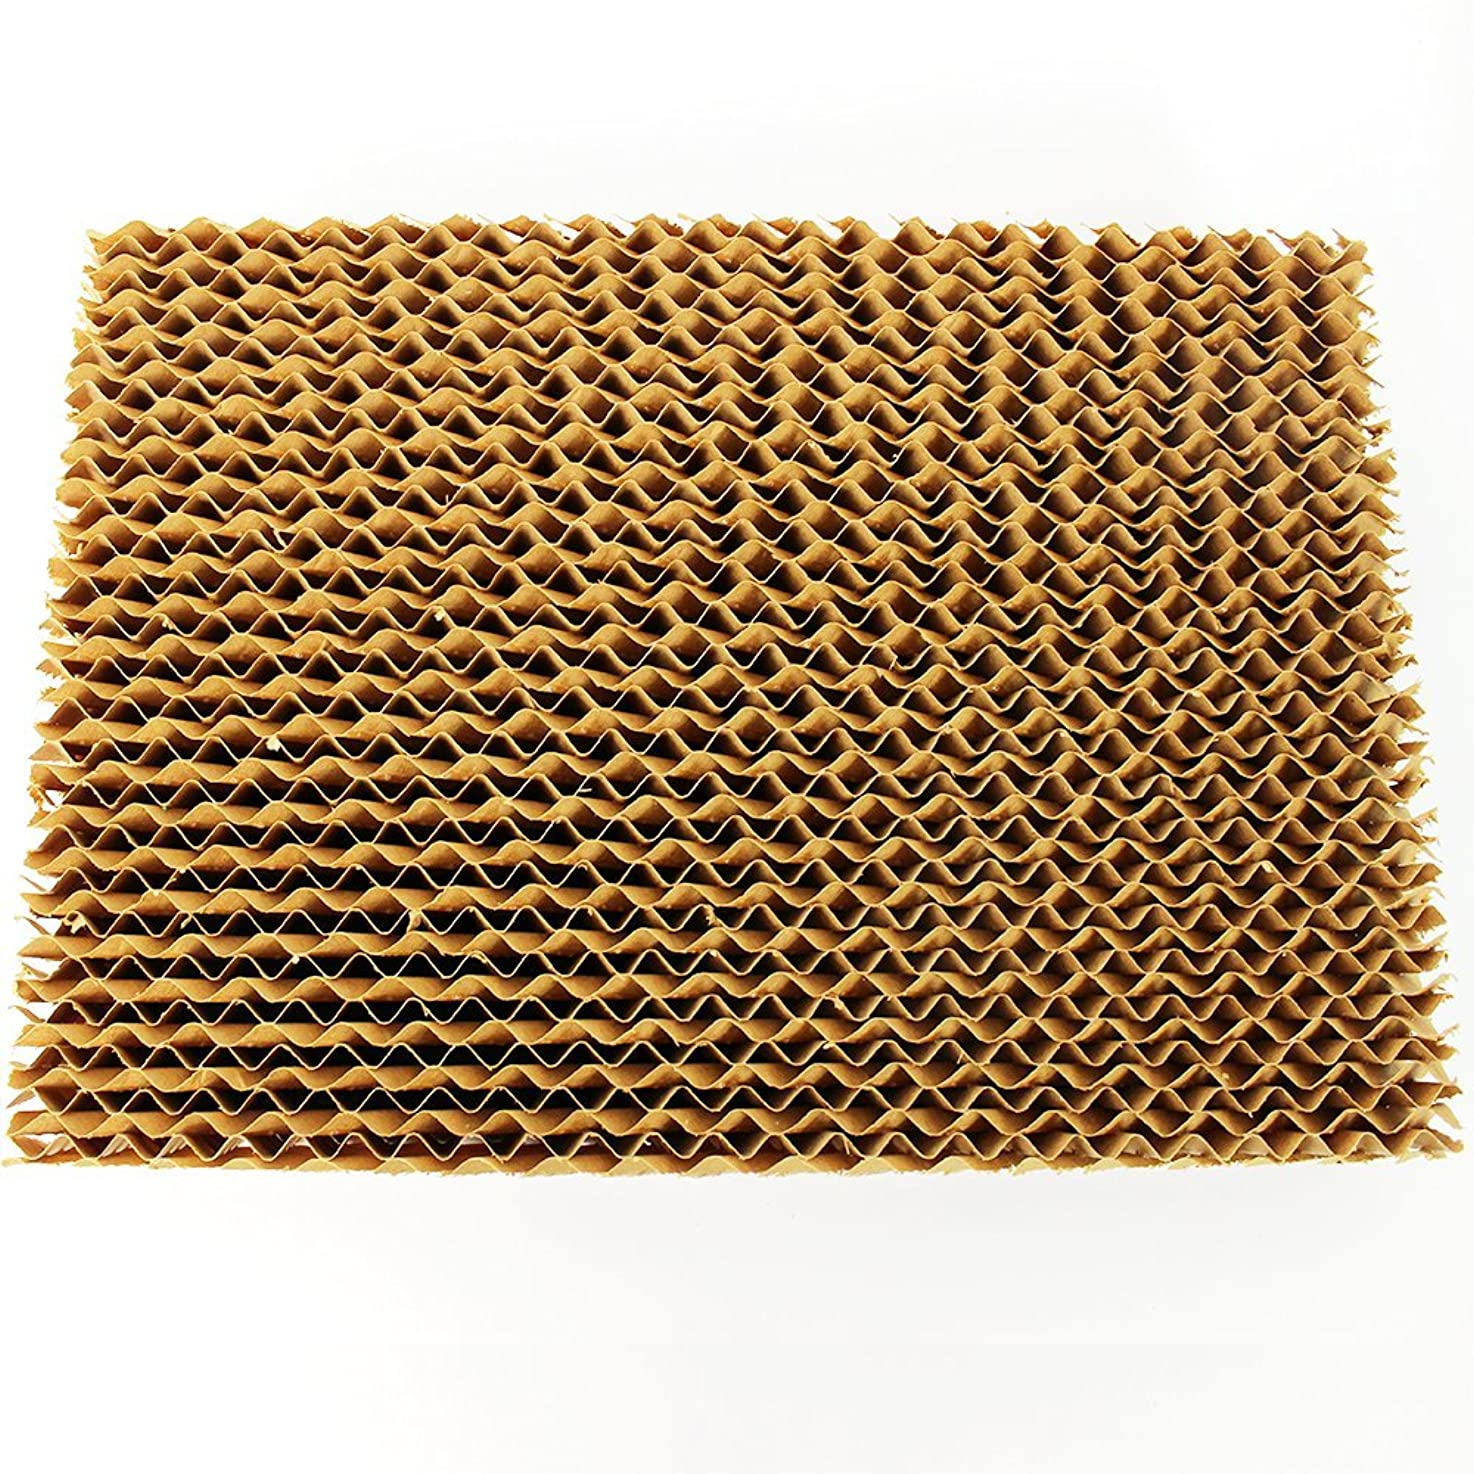 Honeywell Replacement Cooling Pad for CS10XE Evaporative Cooler ihwcmmfqflgbn3